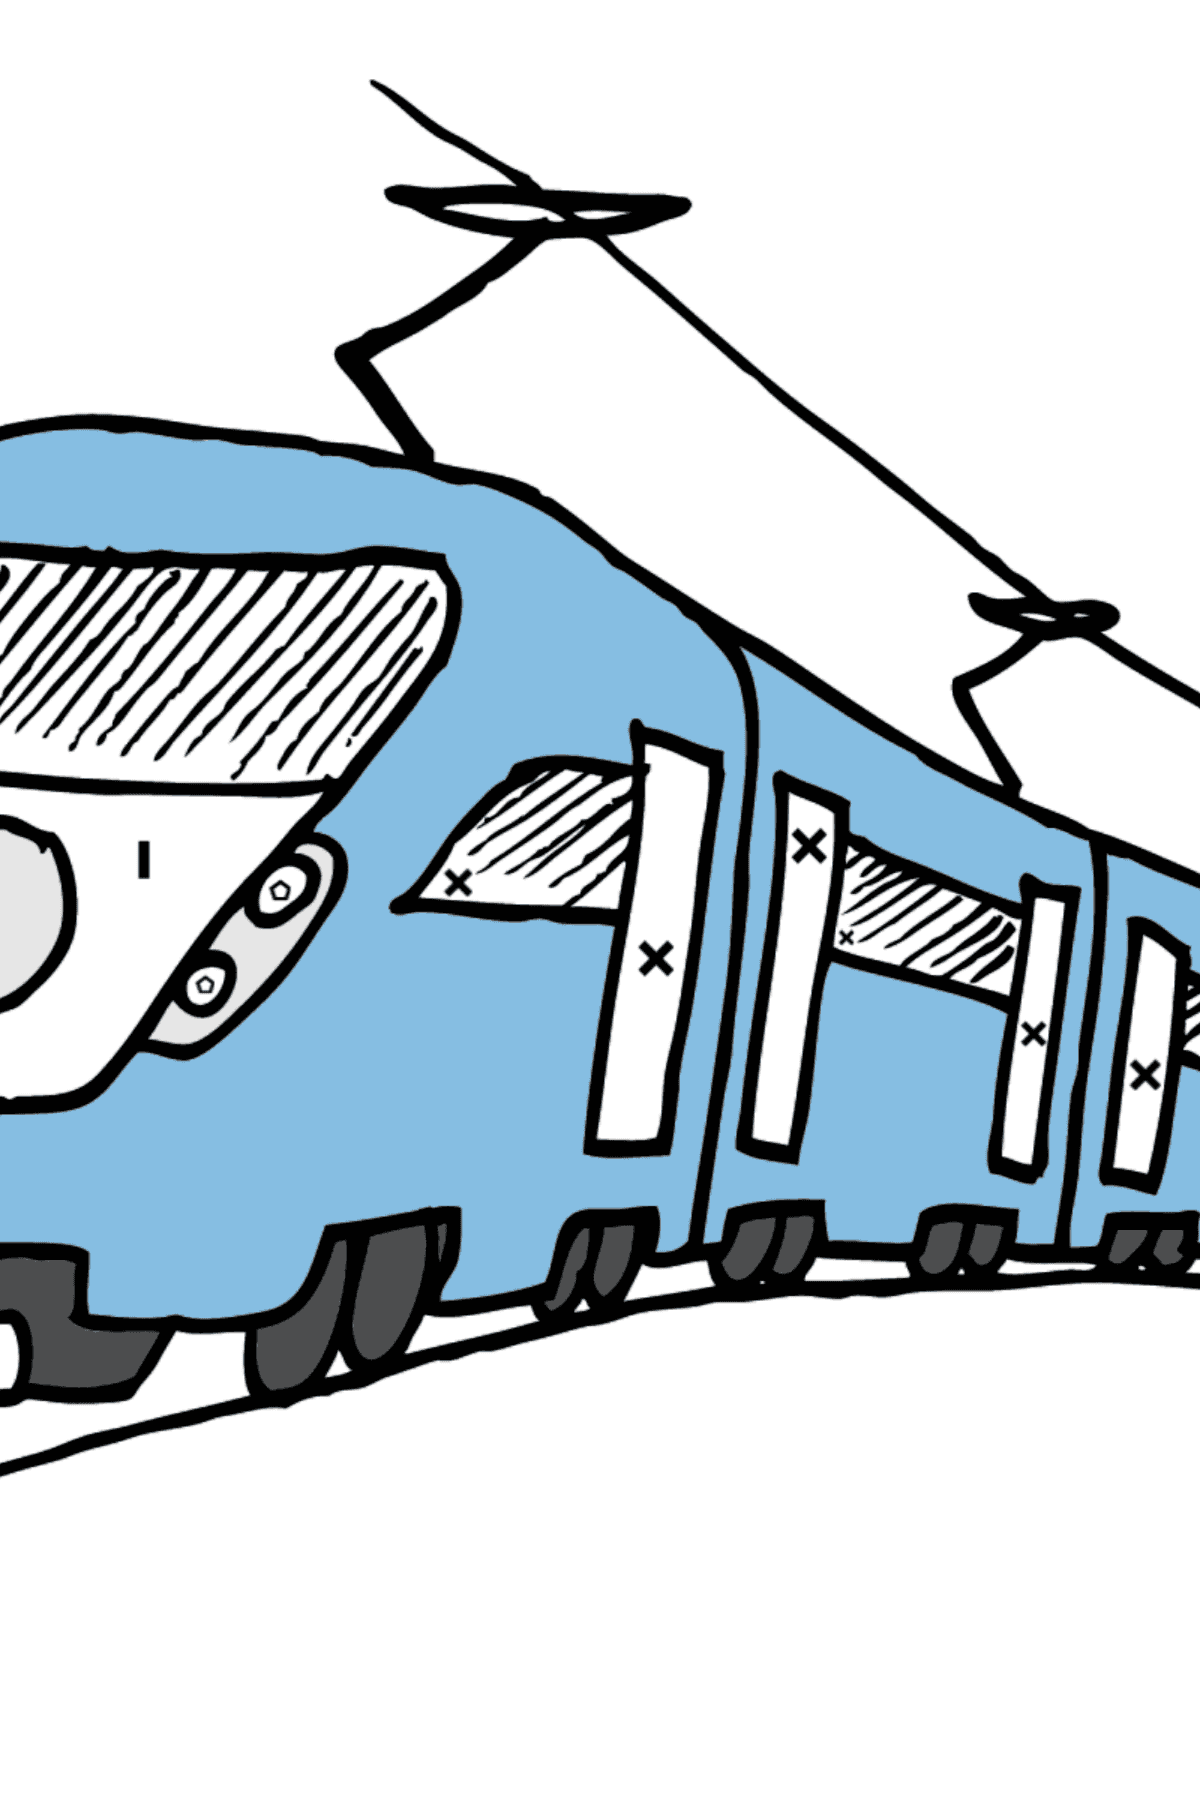 Coloring Page - A Passenger Train - Coloring by Symbols and Geometric Shapes for Kids